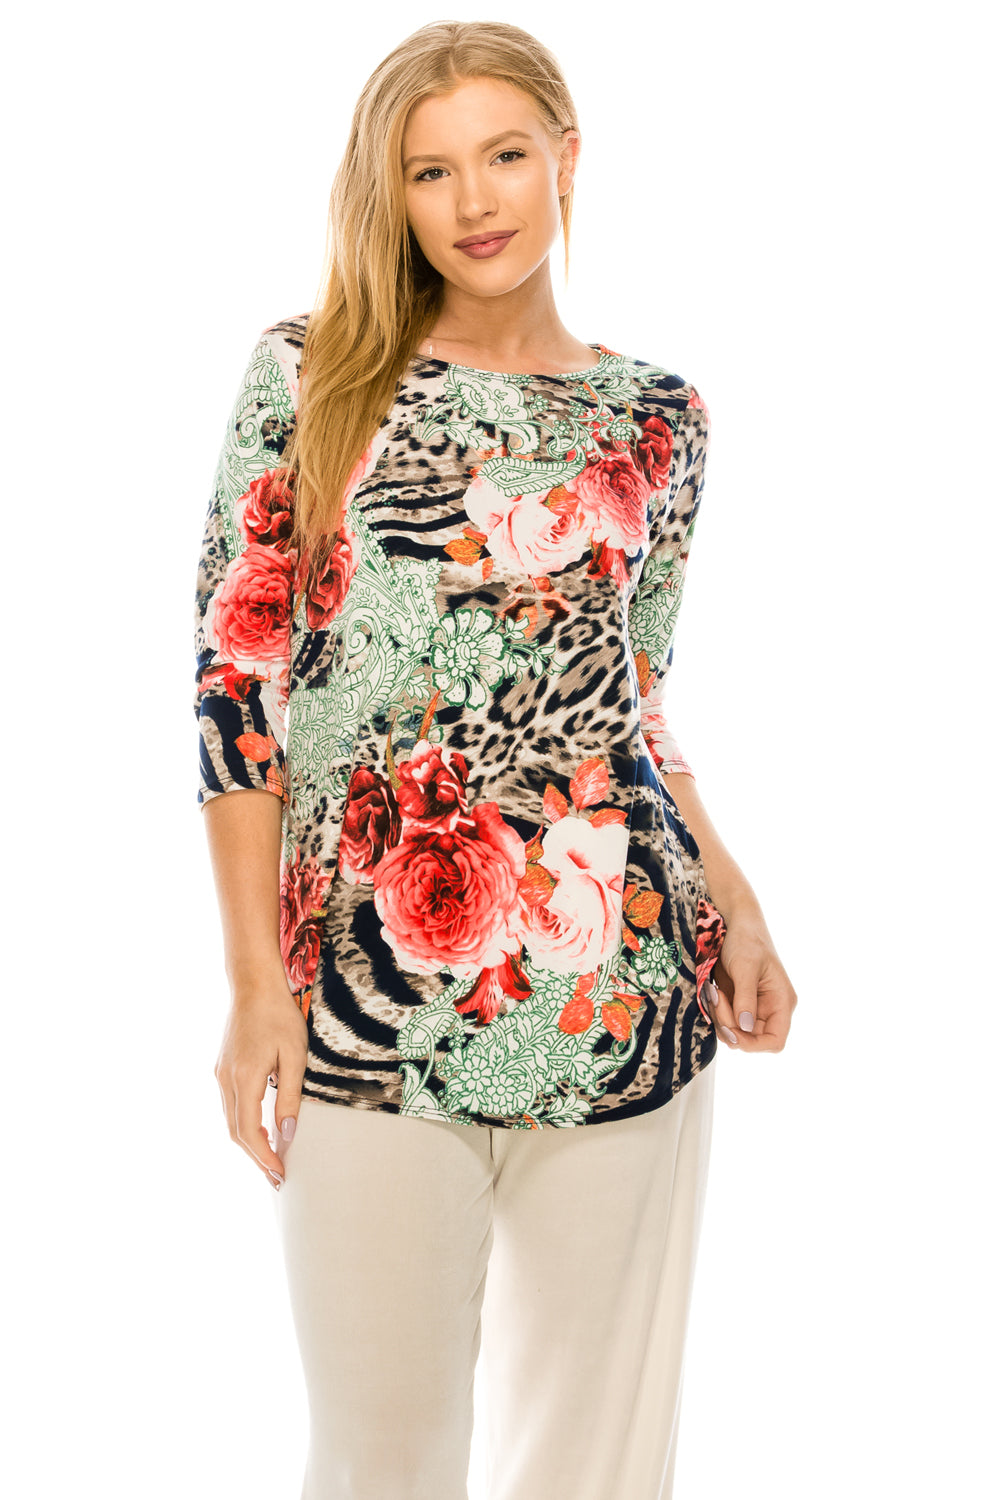 Jostar Women's HIT Rounded Bottom Tunic Top Quarter Sleeve Print, 346HT-QP-W209 - Jostar Online